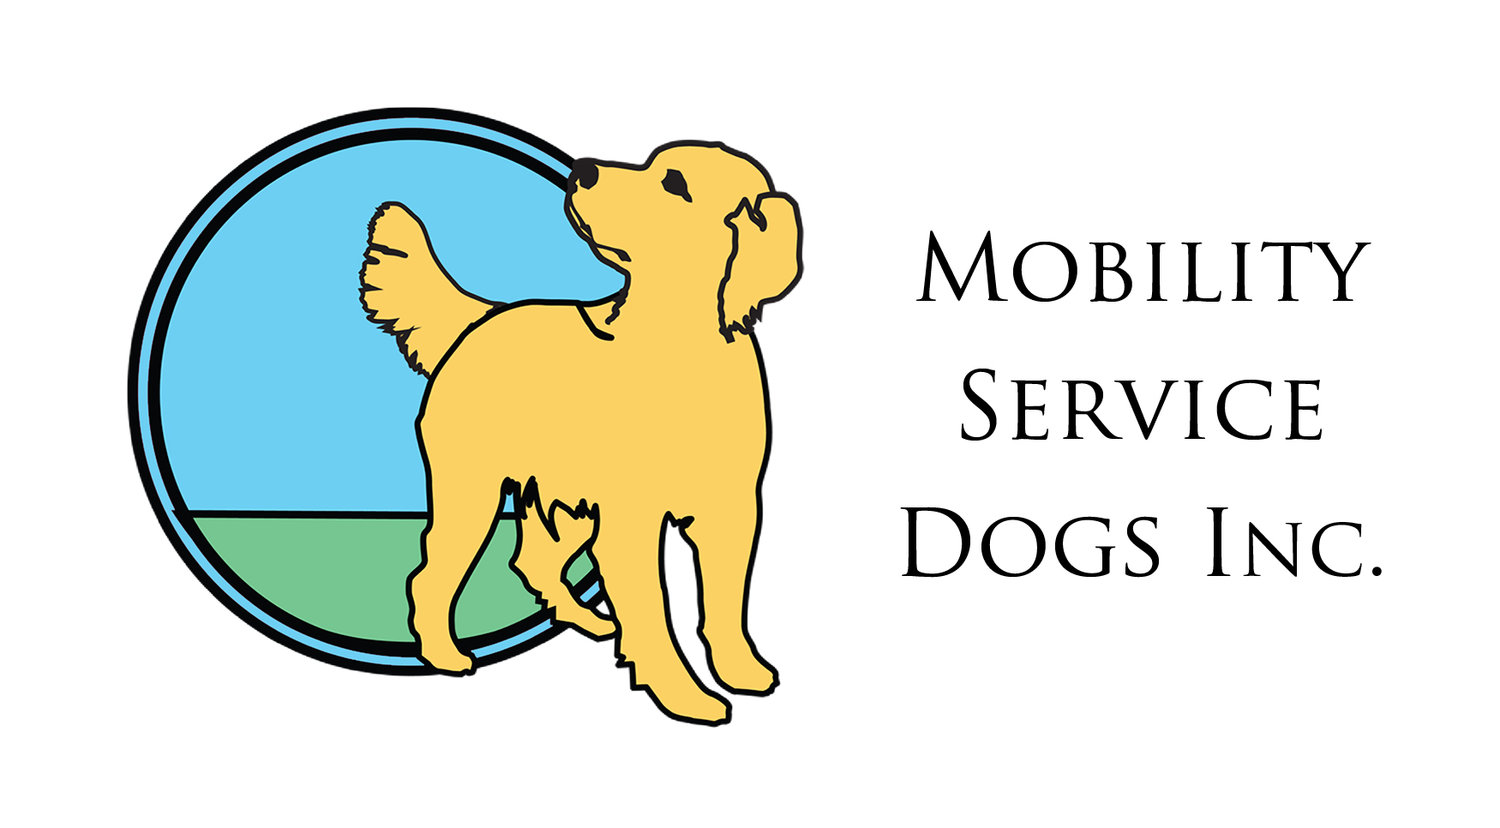 Finest Mobility Service Dogs Inc. - Who We Are — Mobility Service Dogs, Inc. BJ08